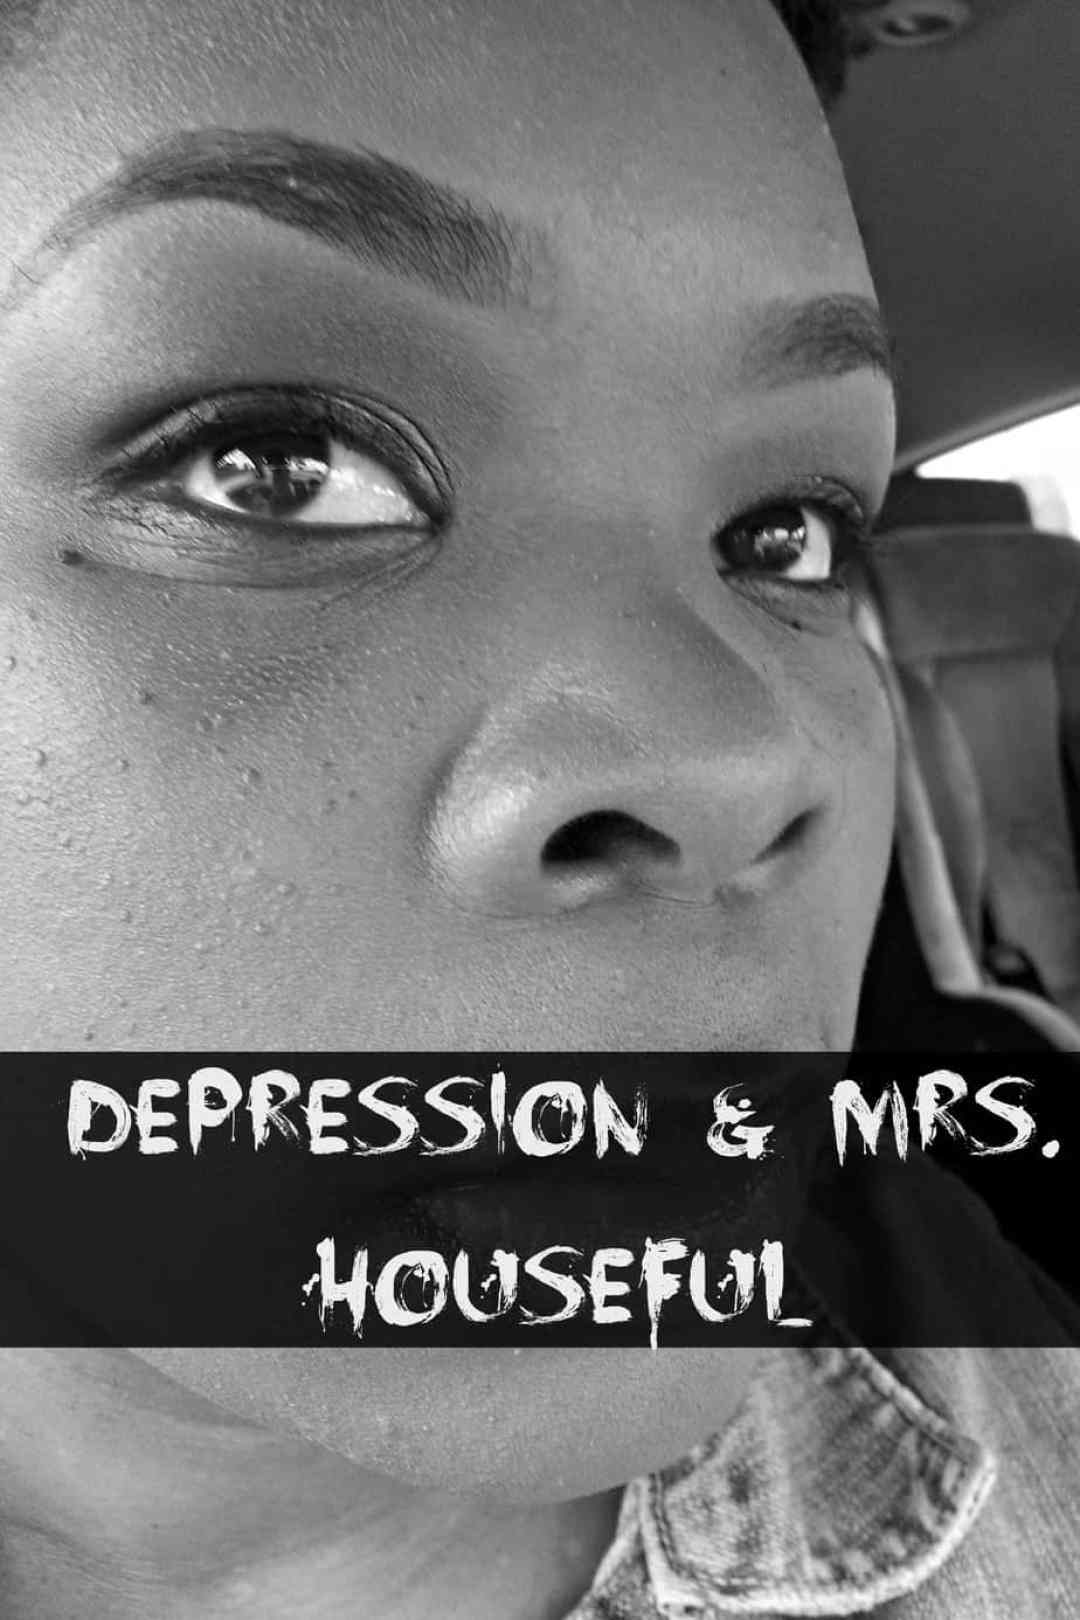 Depression and Mrs. Houseful of Nicholes